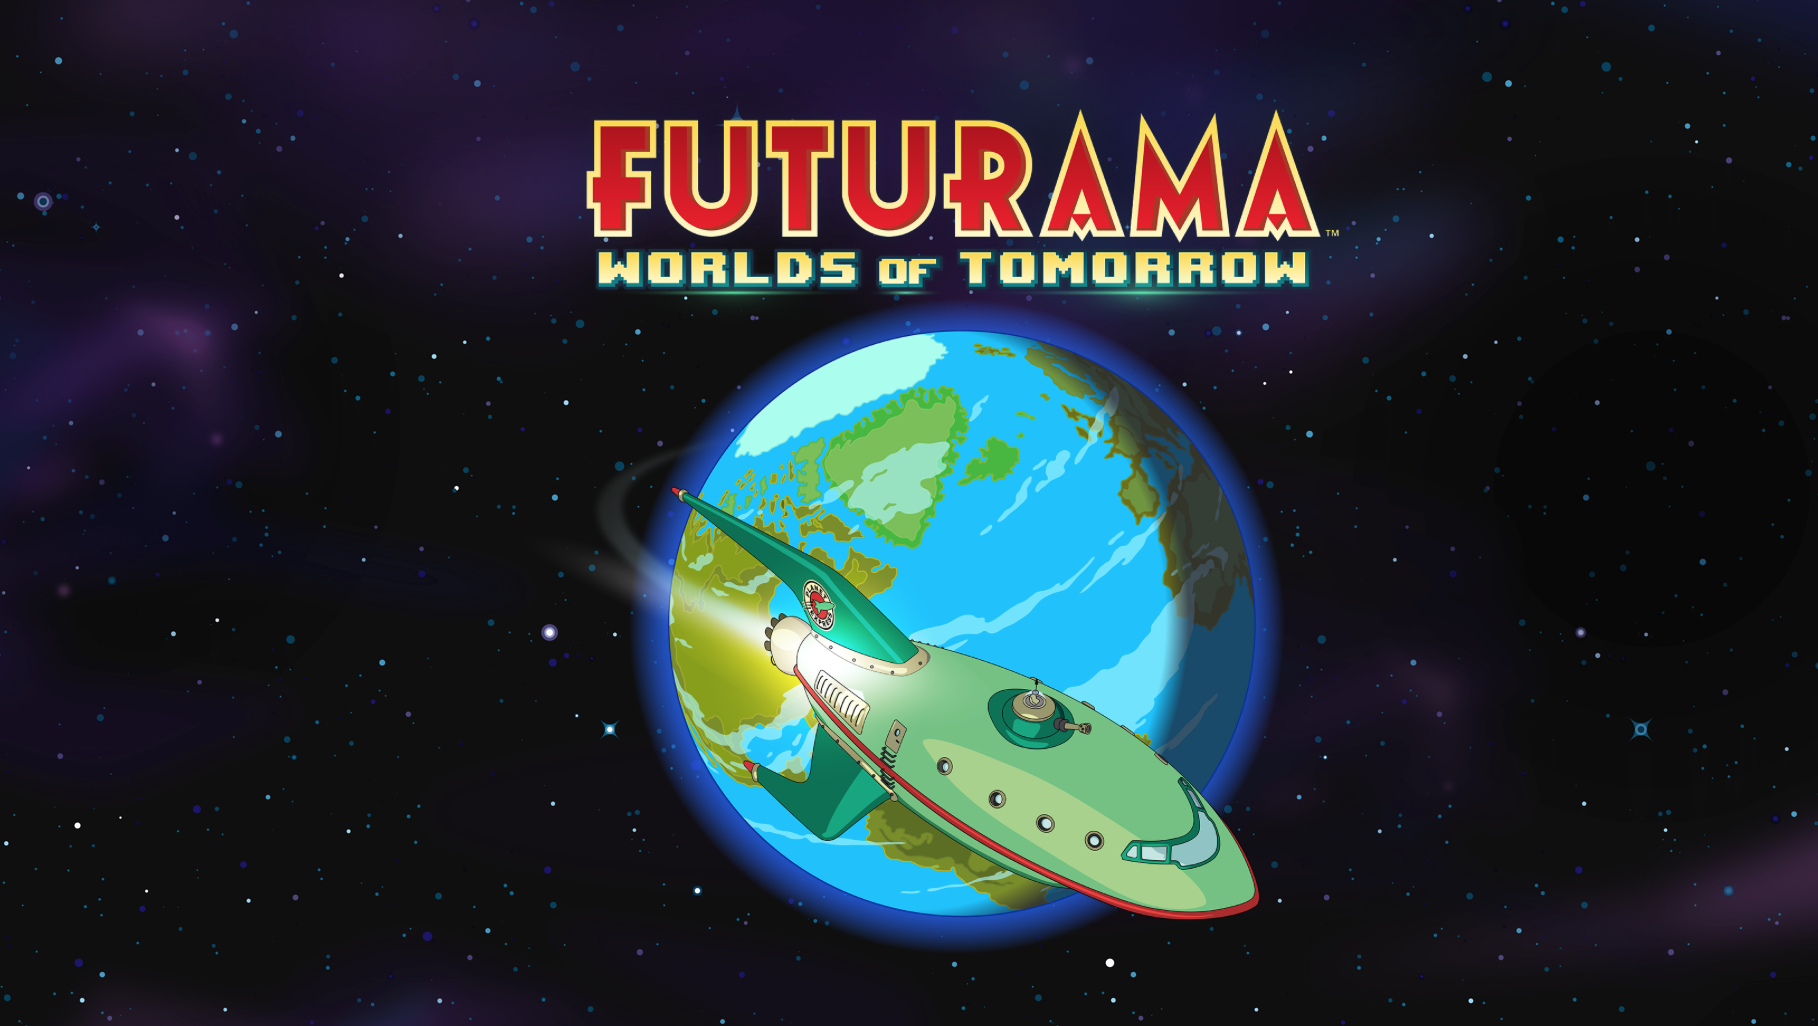 Futurama: Worlds of Tomorrow is the 'real Futurama deal', coming soon to iOS and Android